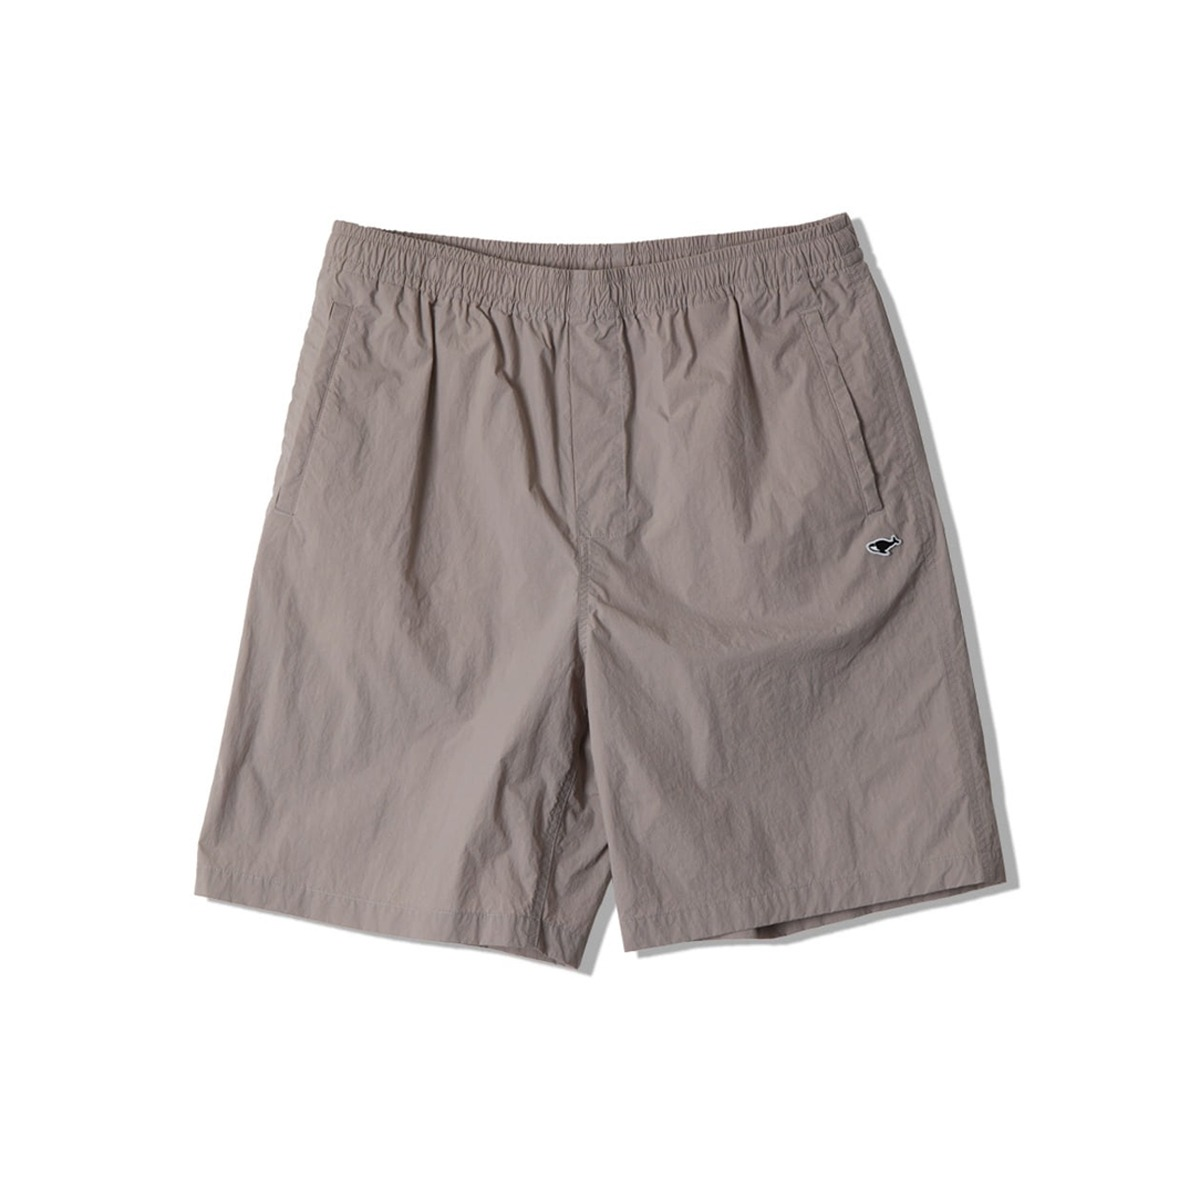 [NEITHERS] S MEDICAL SHORTS 'GREY'